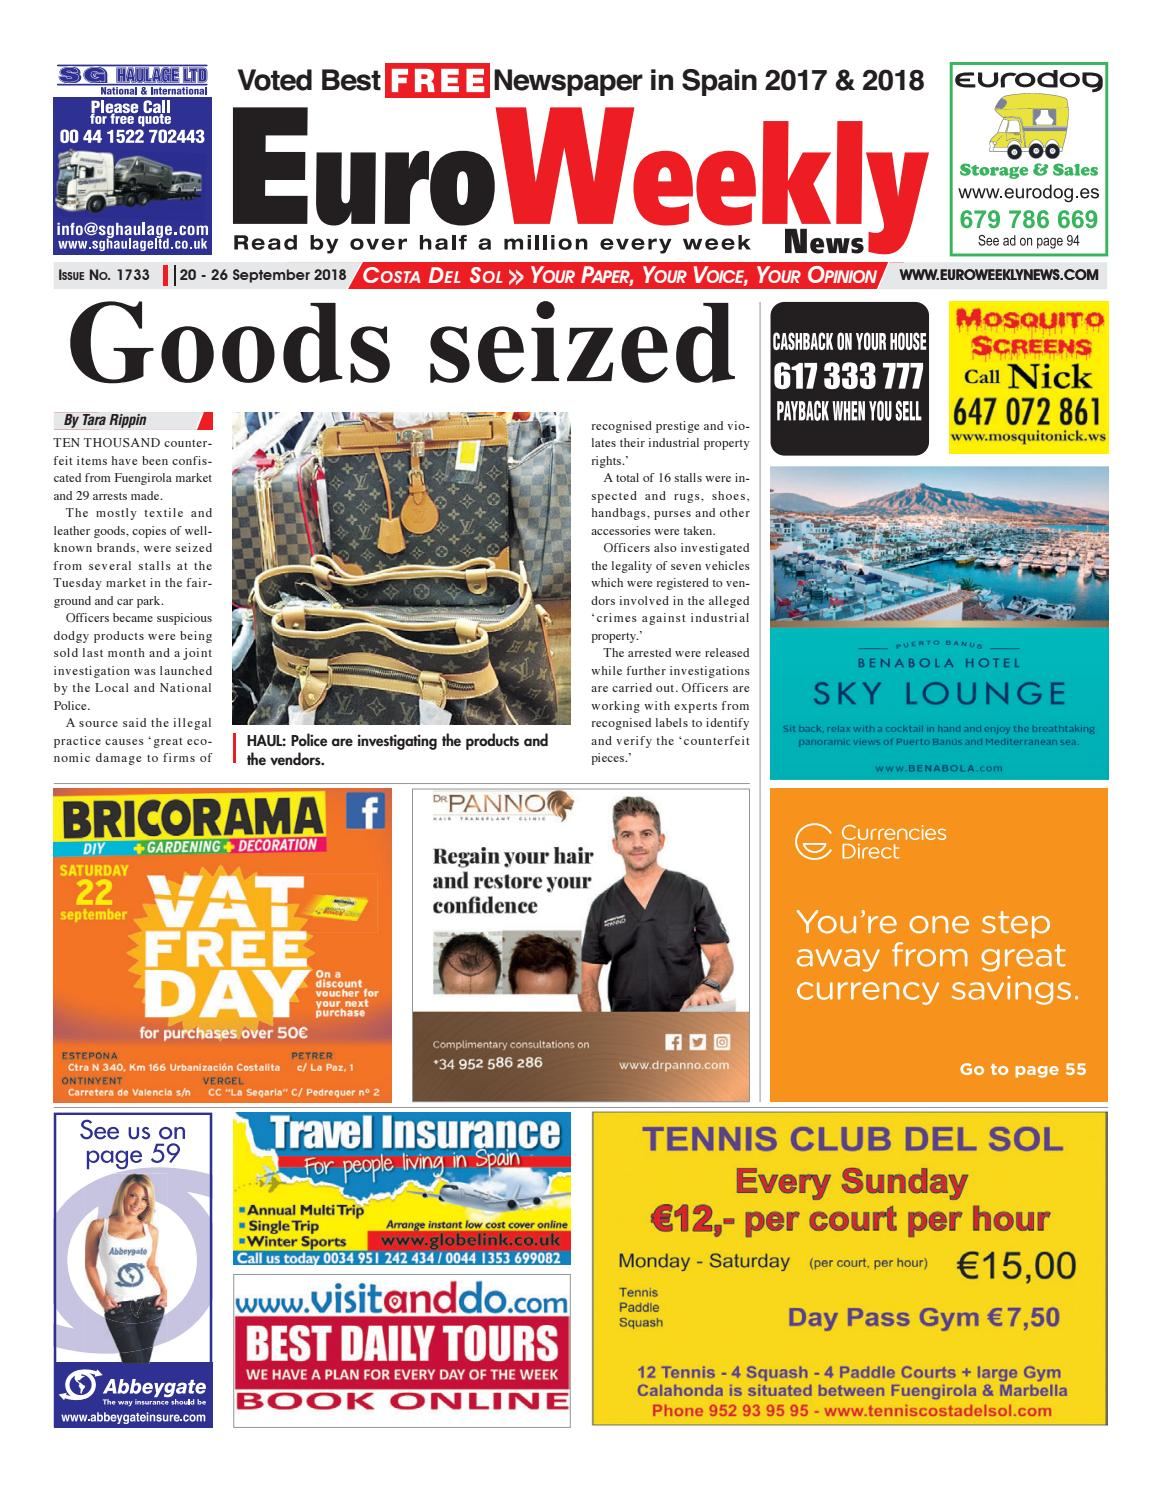 c42fa4652b3 Euro Weekly News - Costa del Sol 20 - 26 September 2018 Issue 1733 by Euro  Weekly News Media S.A. - issuu